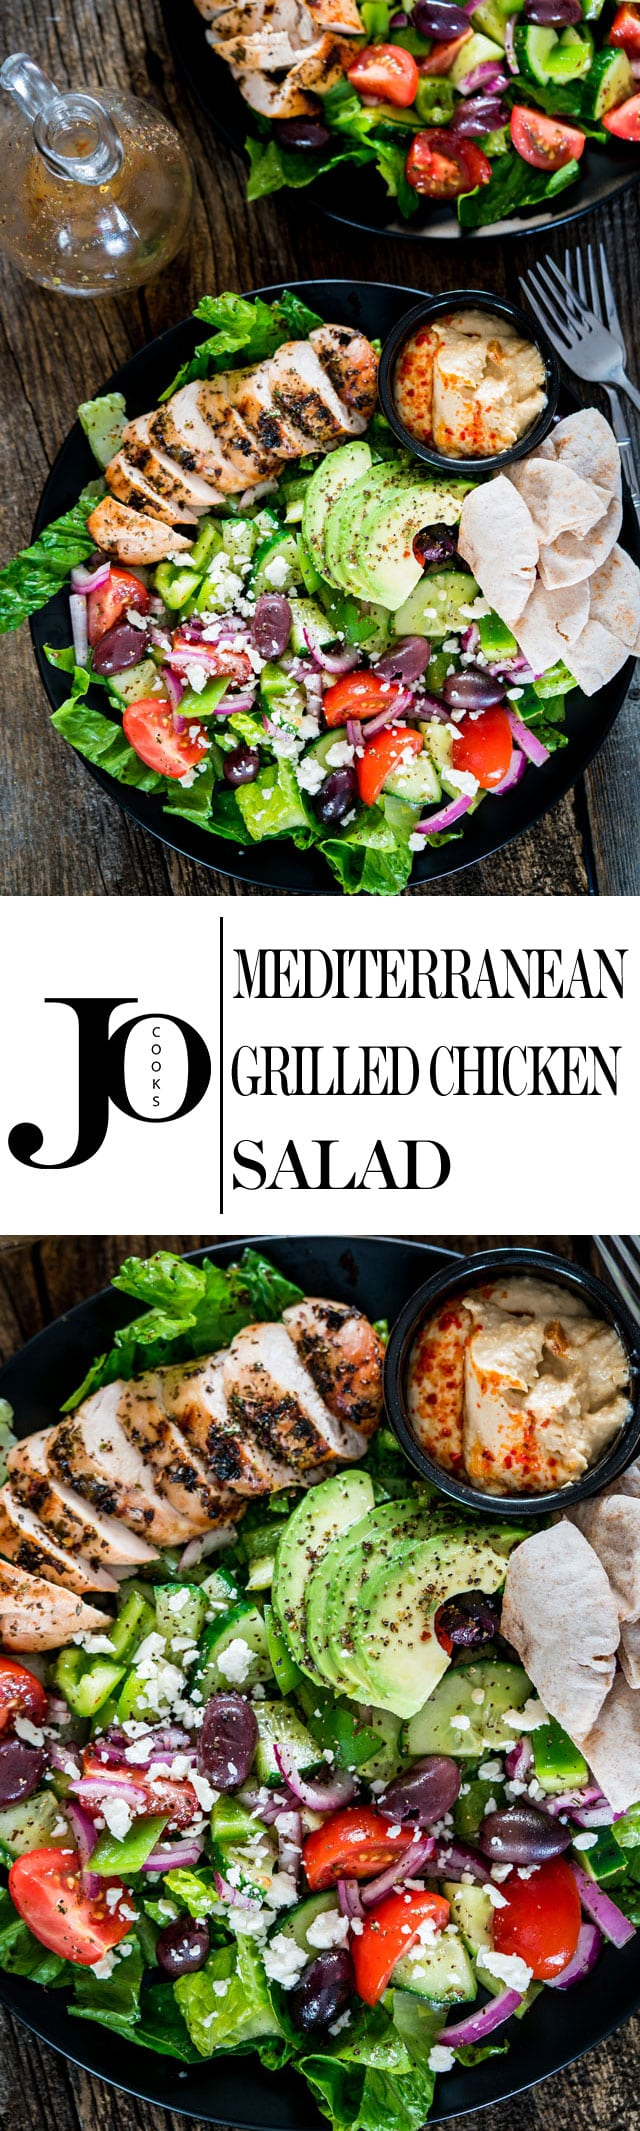 Mediterranean Grilled Chicken Salad - the perfect summer salad full of Mediterranean flavors! Marinated Greek chicken with an extremely delicious salad! www.jocooks.com #mediterraneansalad